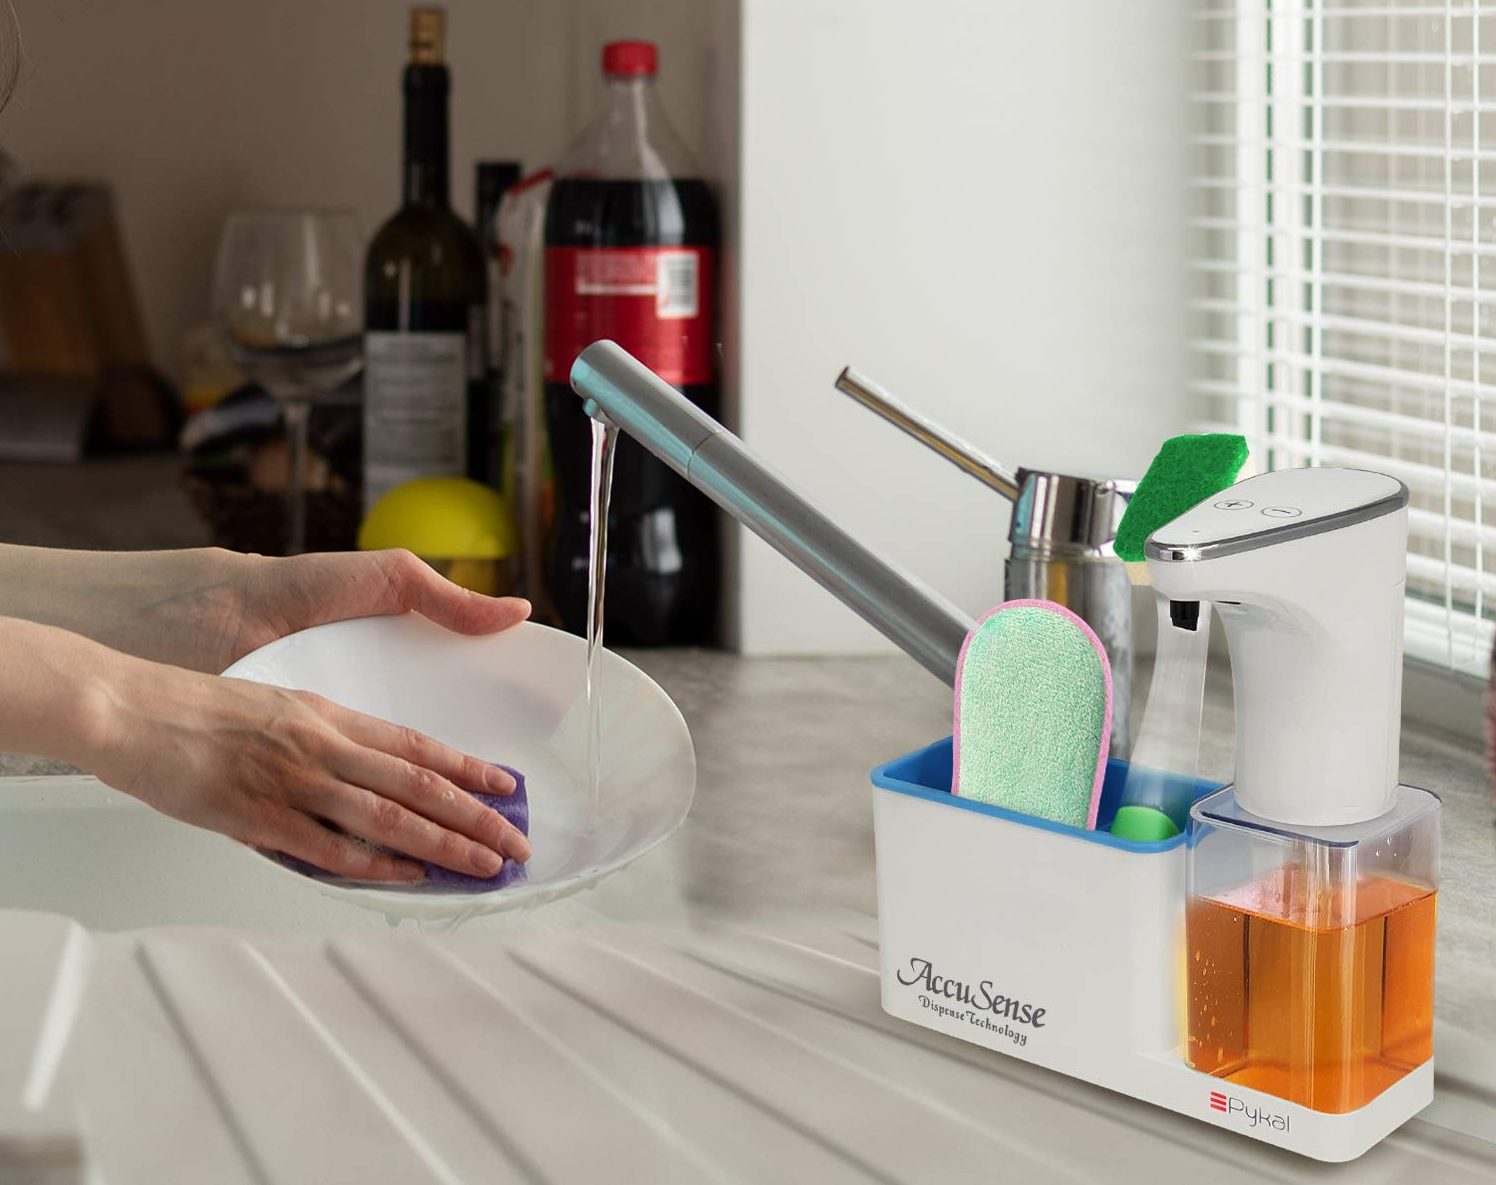 Pykal 2-in-1 Automatic Soap Dispenser Touchless & Organizer